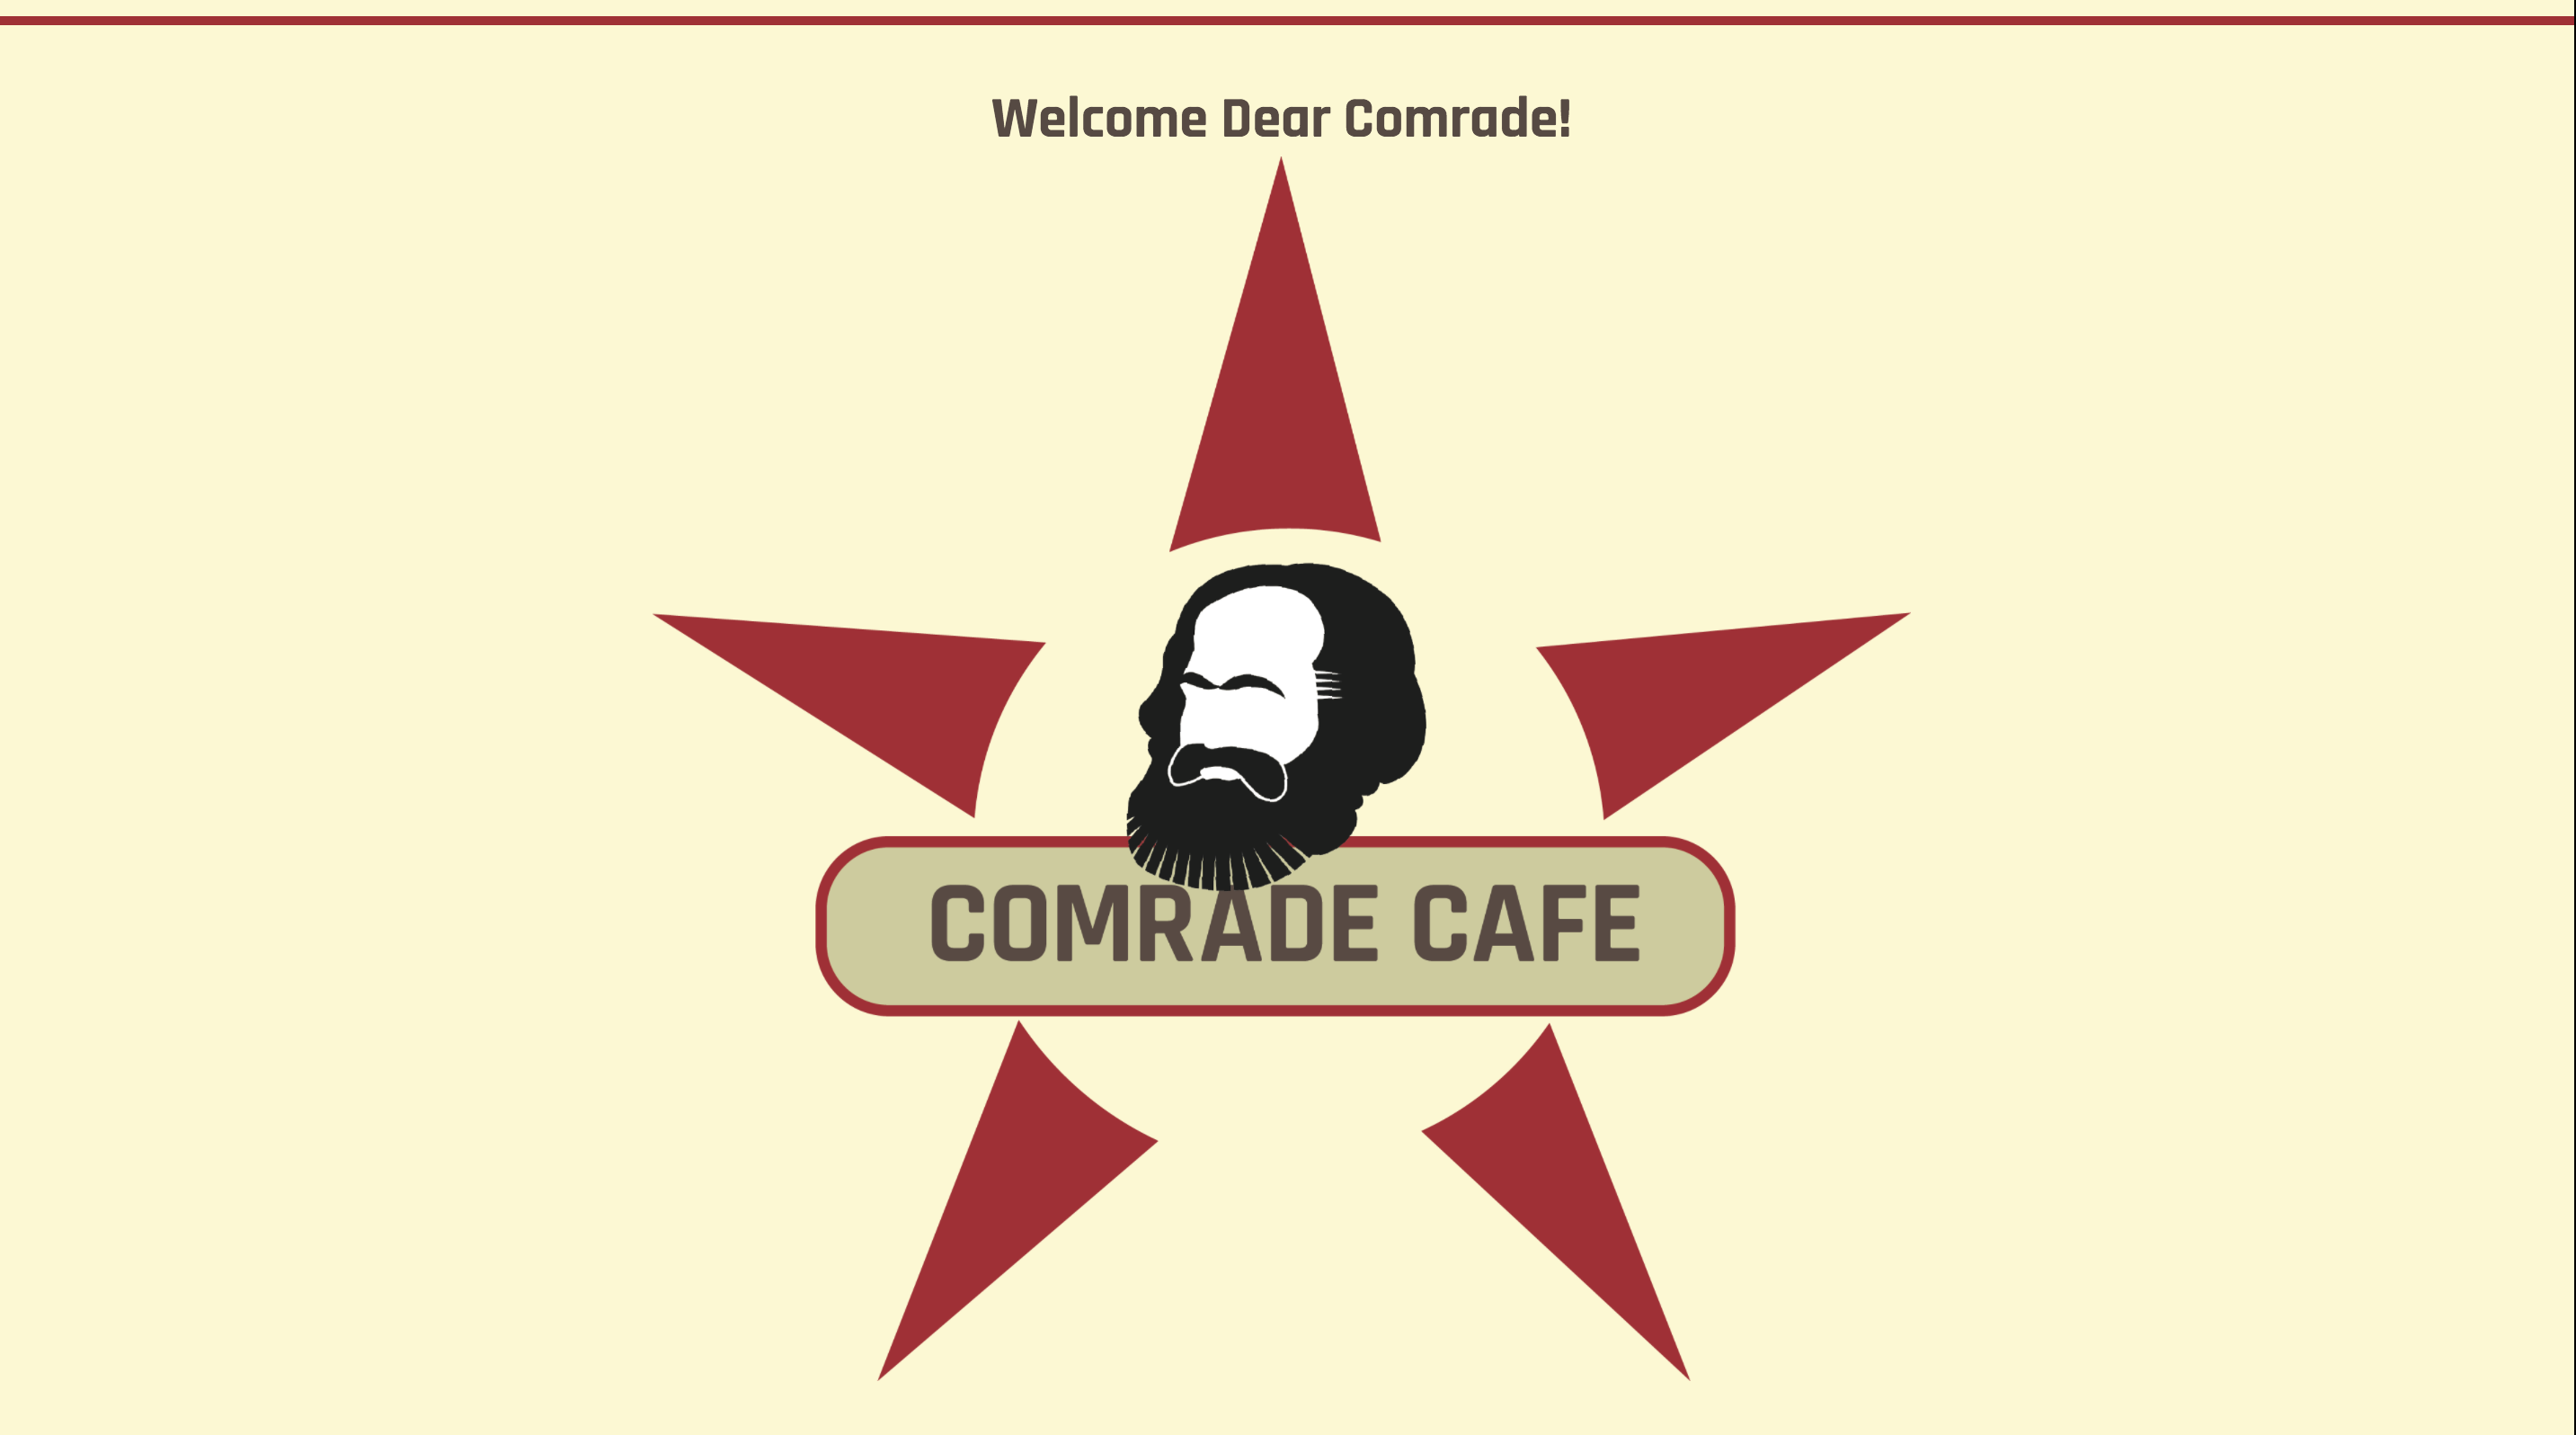 Comrade Cafe – Princy Mascarenhas